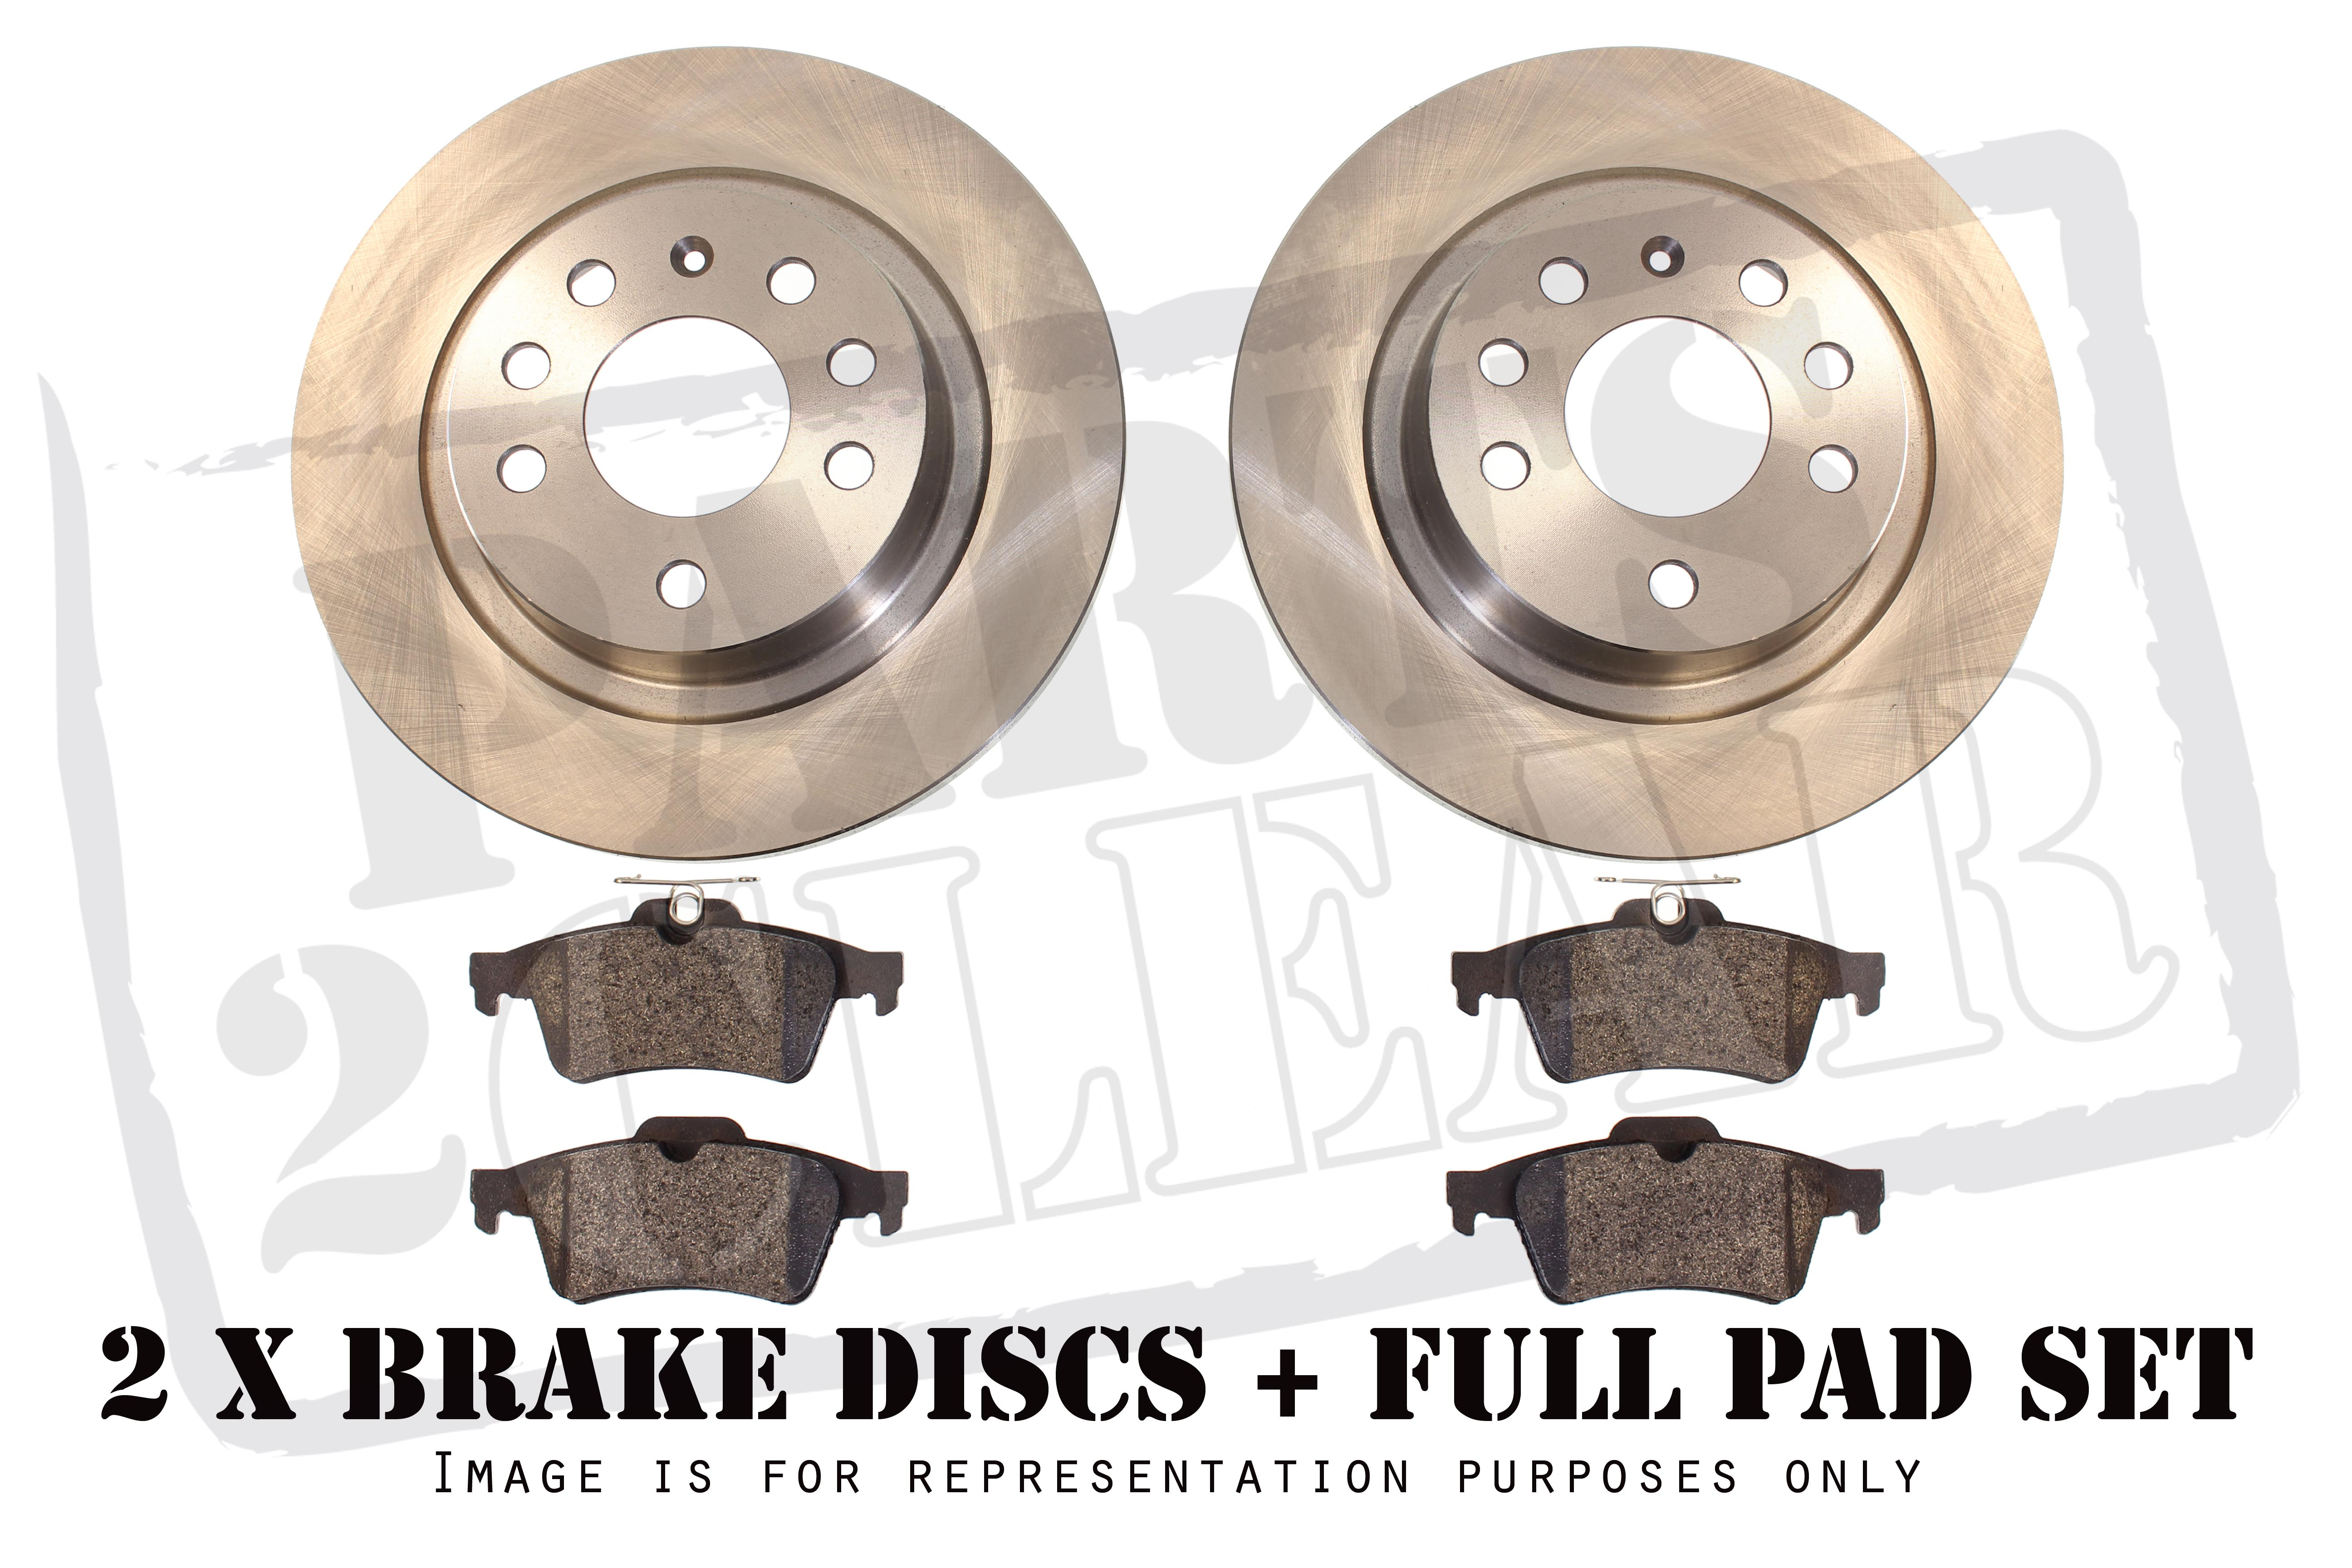 CHEVROLET ORLANDO 1.4 1.8 2.0 2010 TO 2015 FRONT AND REAR BRAKE PADS TOP QUALITY